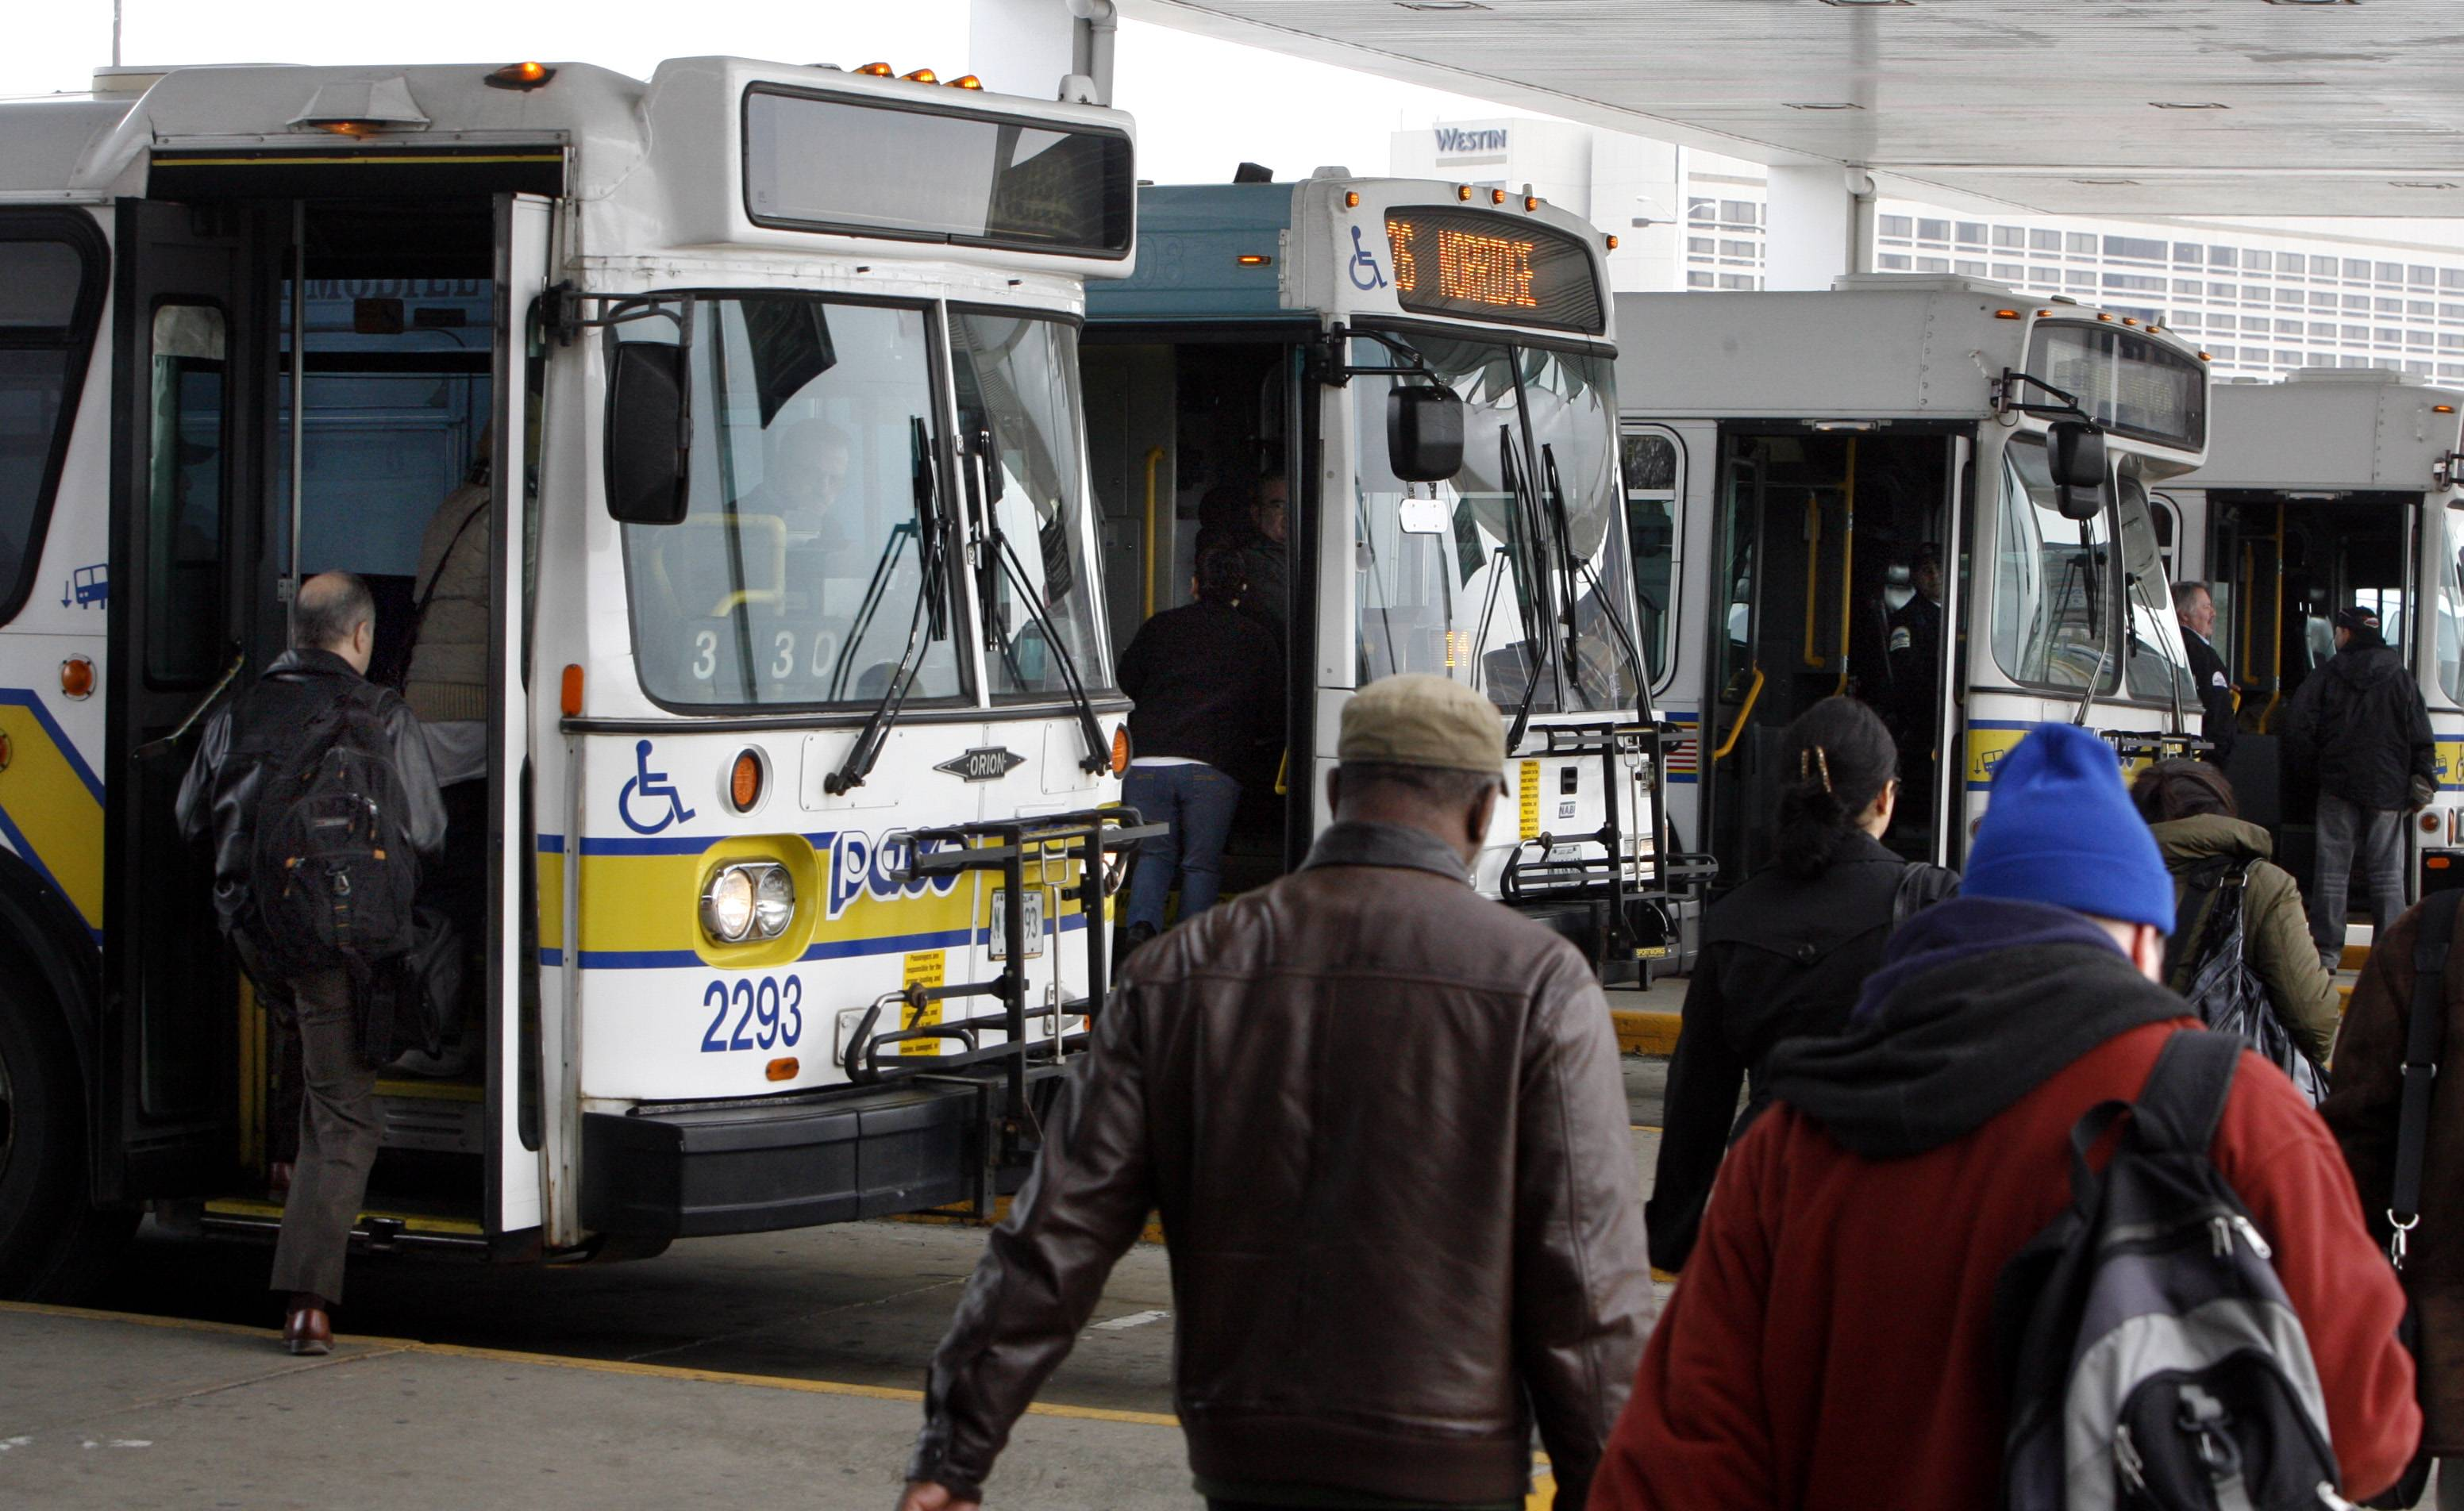 Pace bus riders can expect higher rates in 2018 to cover a budget shortfall.